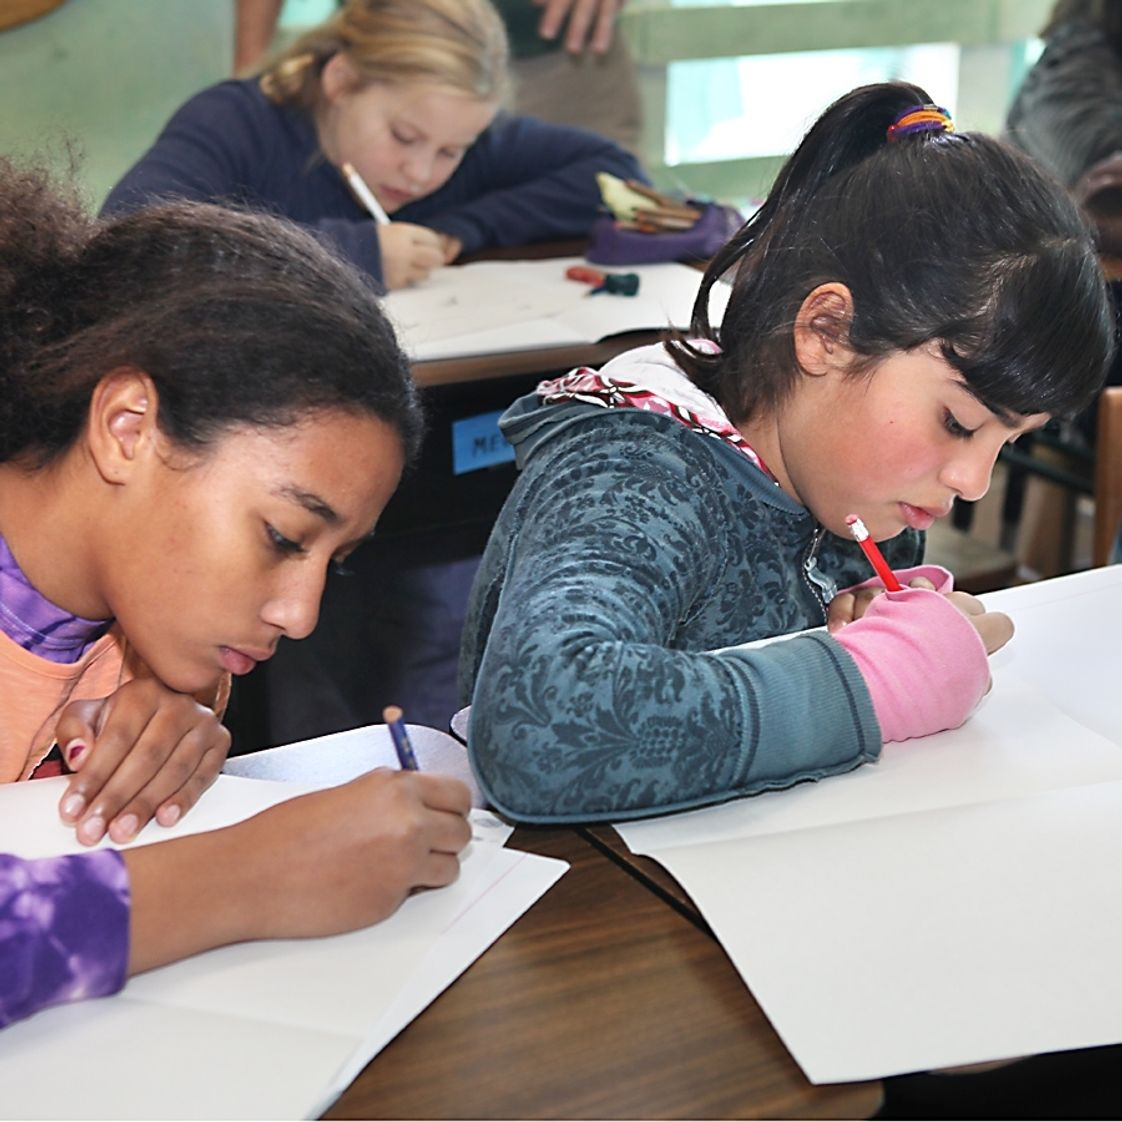 The Waldorf School Of San Diego Photo - Quiet concentration helps us make our academic work accurate and beautiful.